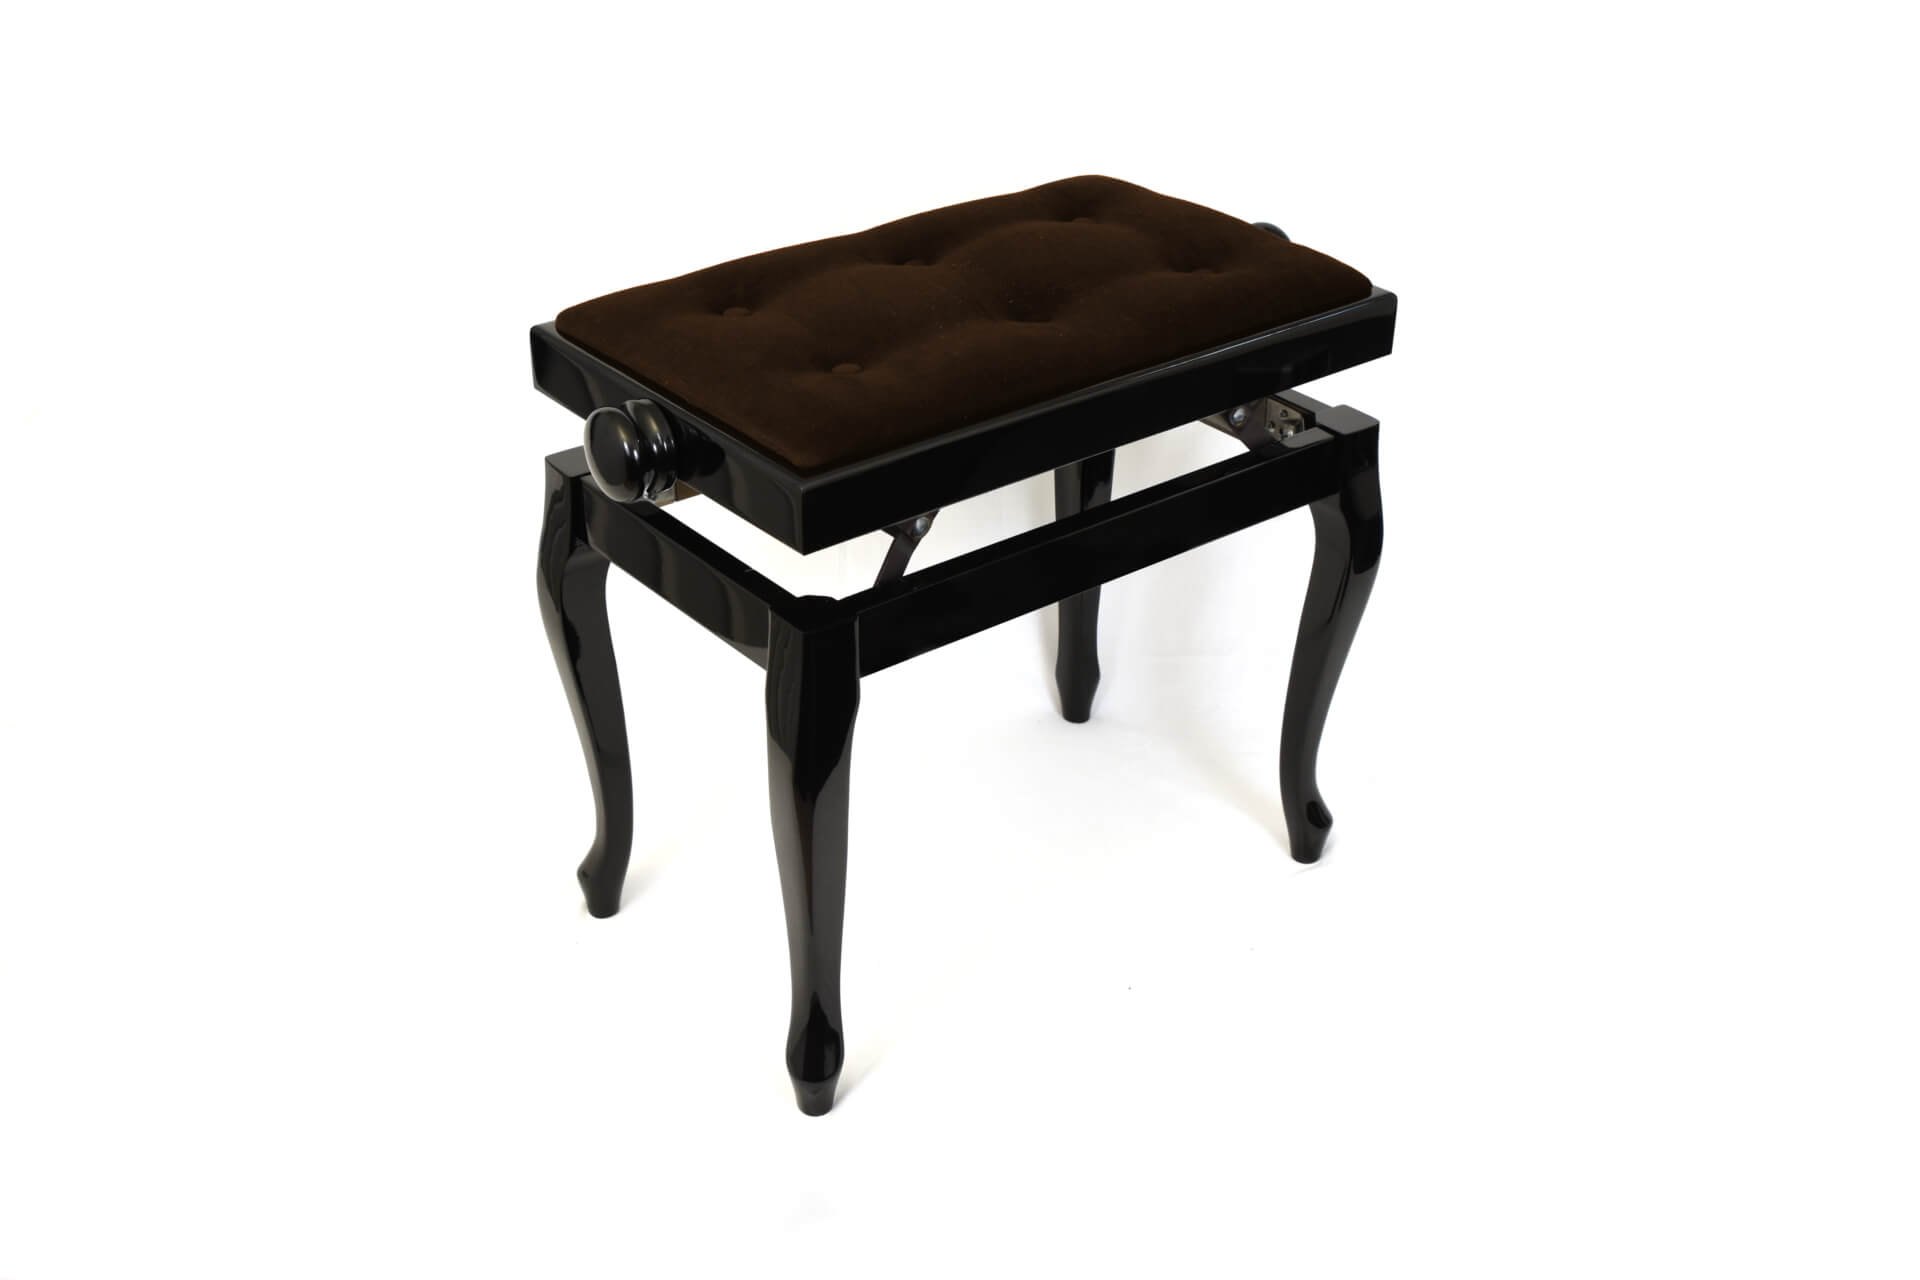 Fabulous Small Bench For Piano Adjustable In Height Vivaldi Brown Machost Co Dining Chair Design Ideas Machostcouk